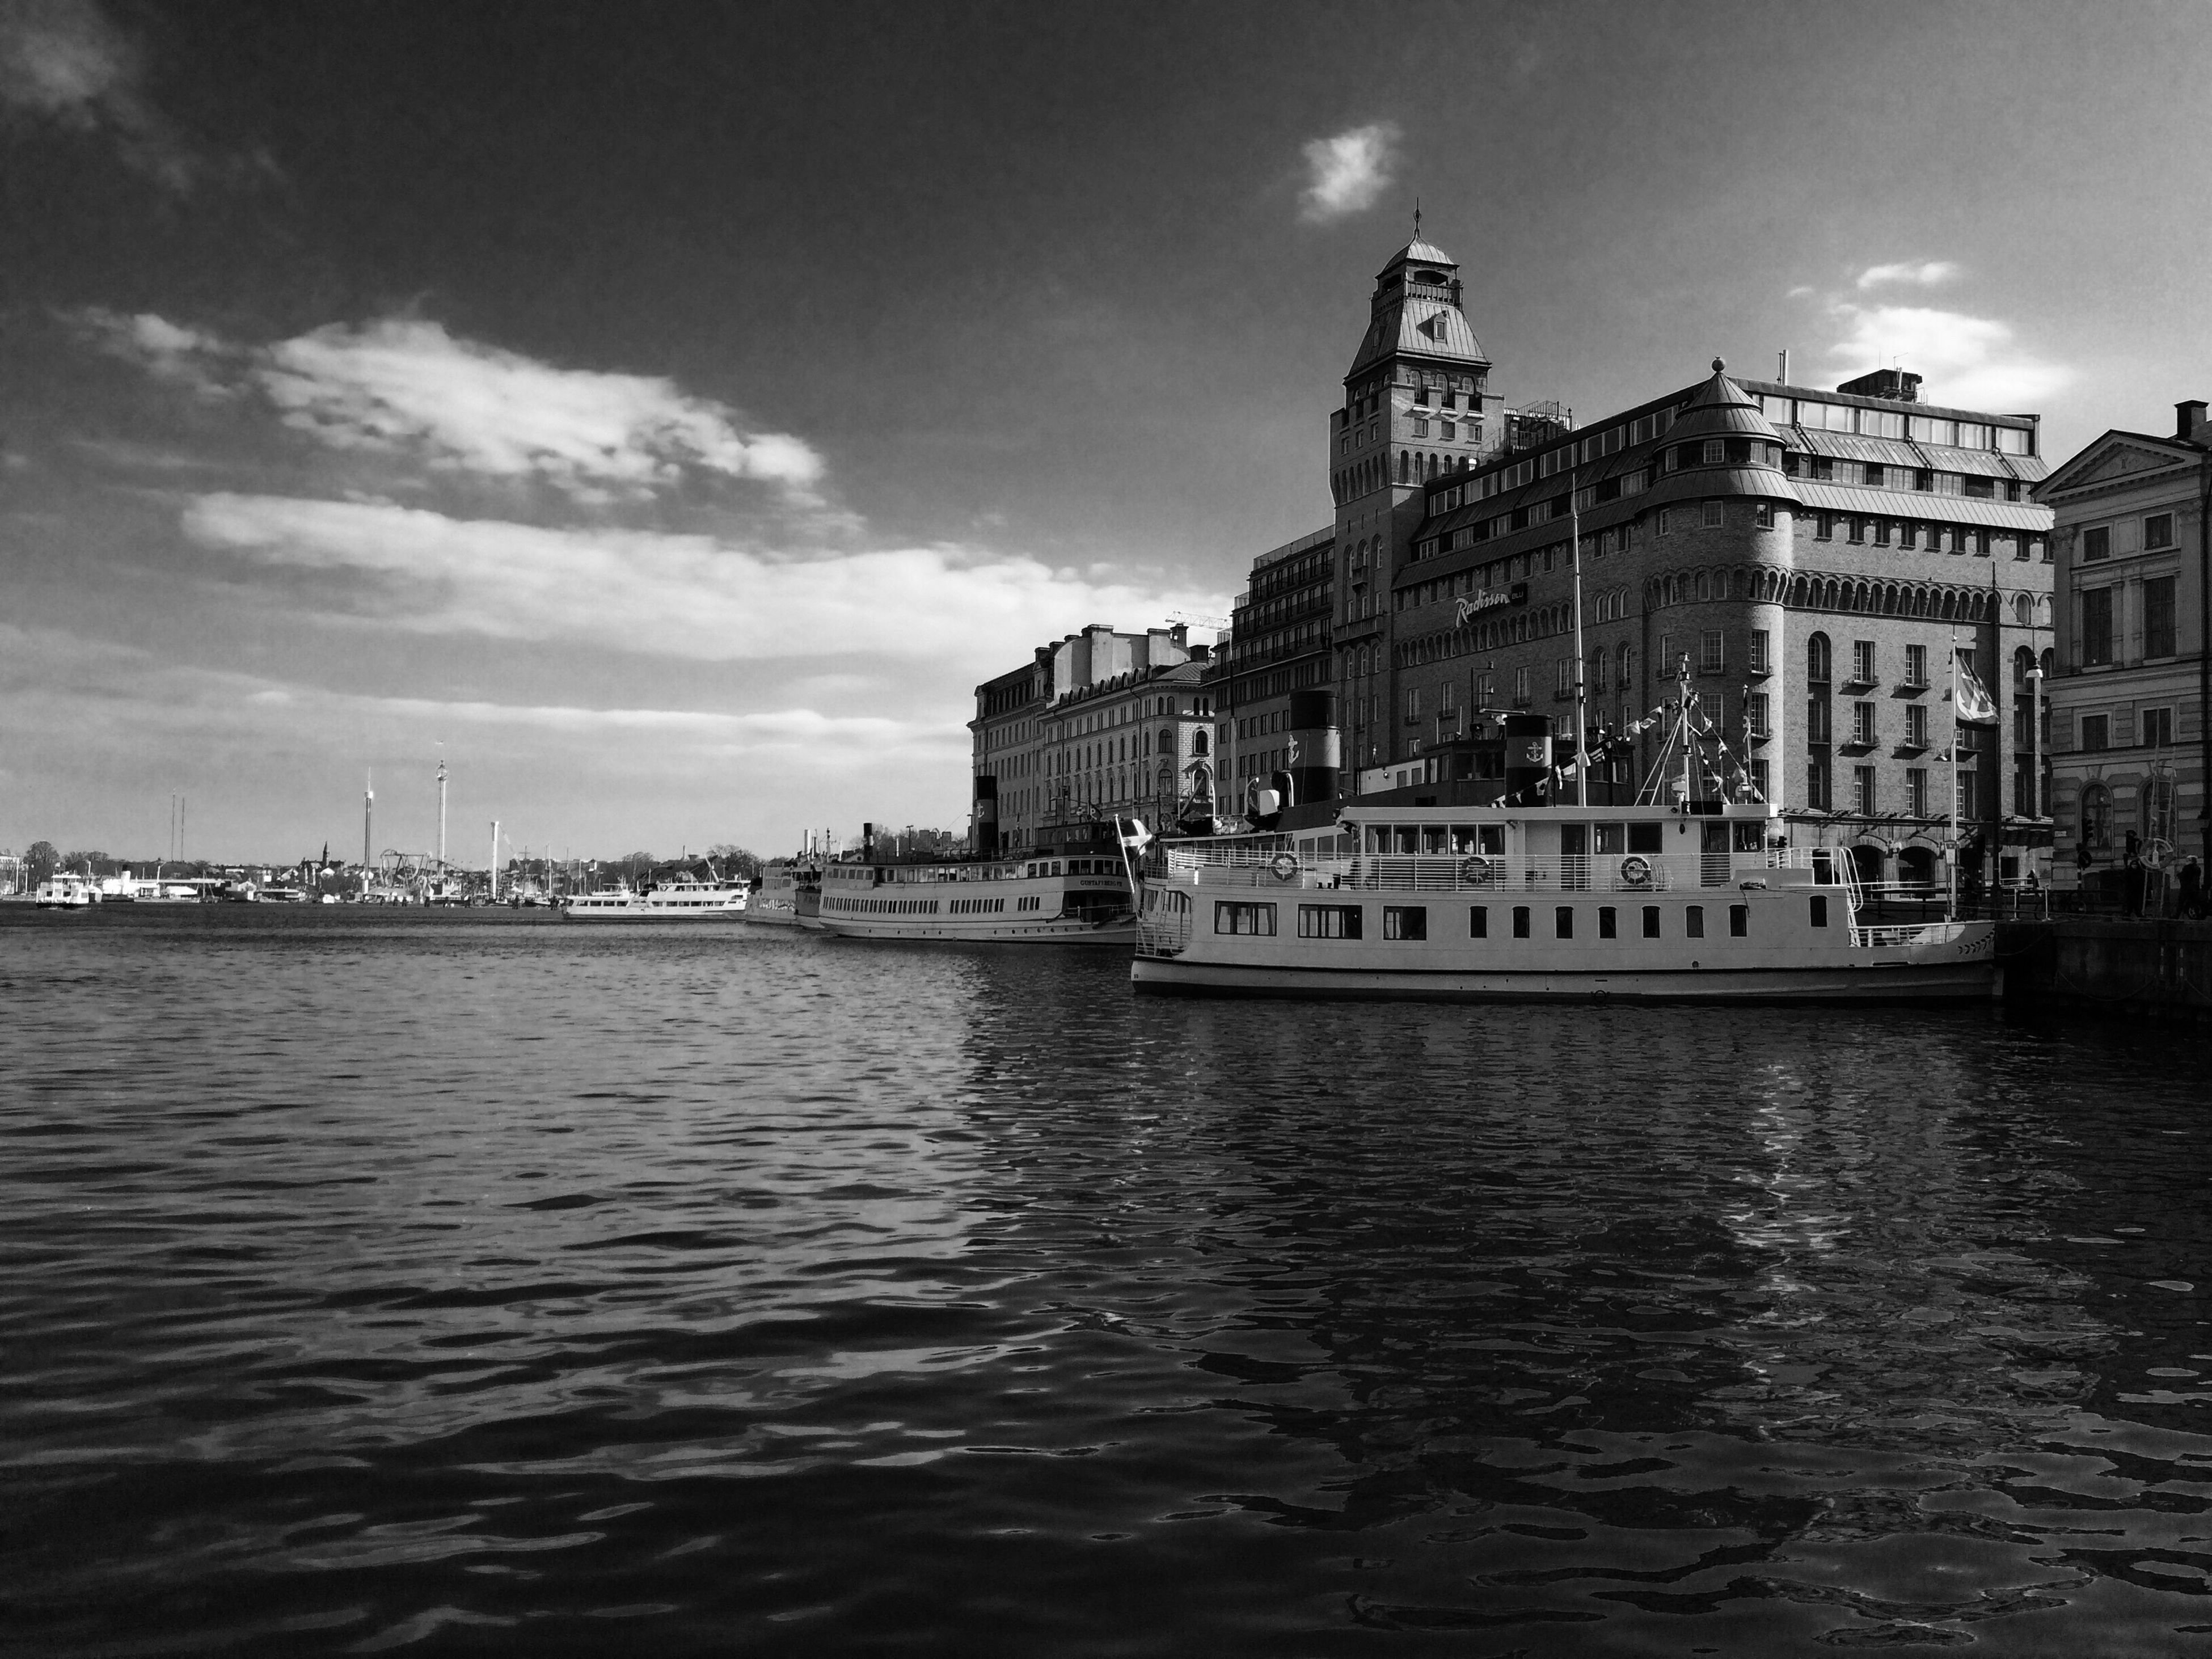 building exterior, architecture, built structure, water, waterfront, sky, nautical vessel, transportation, city, rippled, mode of transport, river, cloud - sky, boat, travel, travel destinations, cloud, canal, outdoors, building